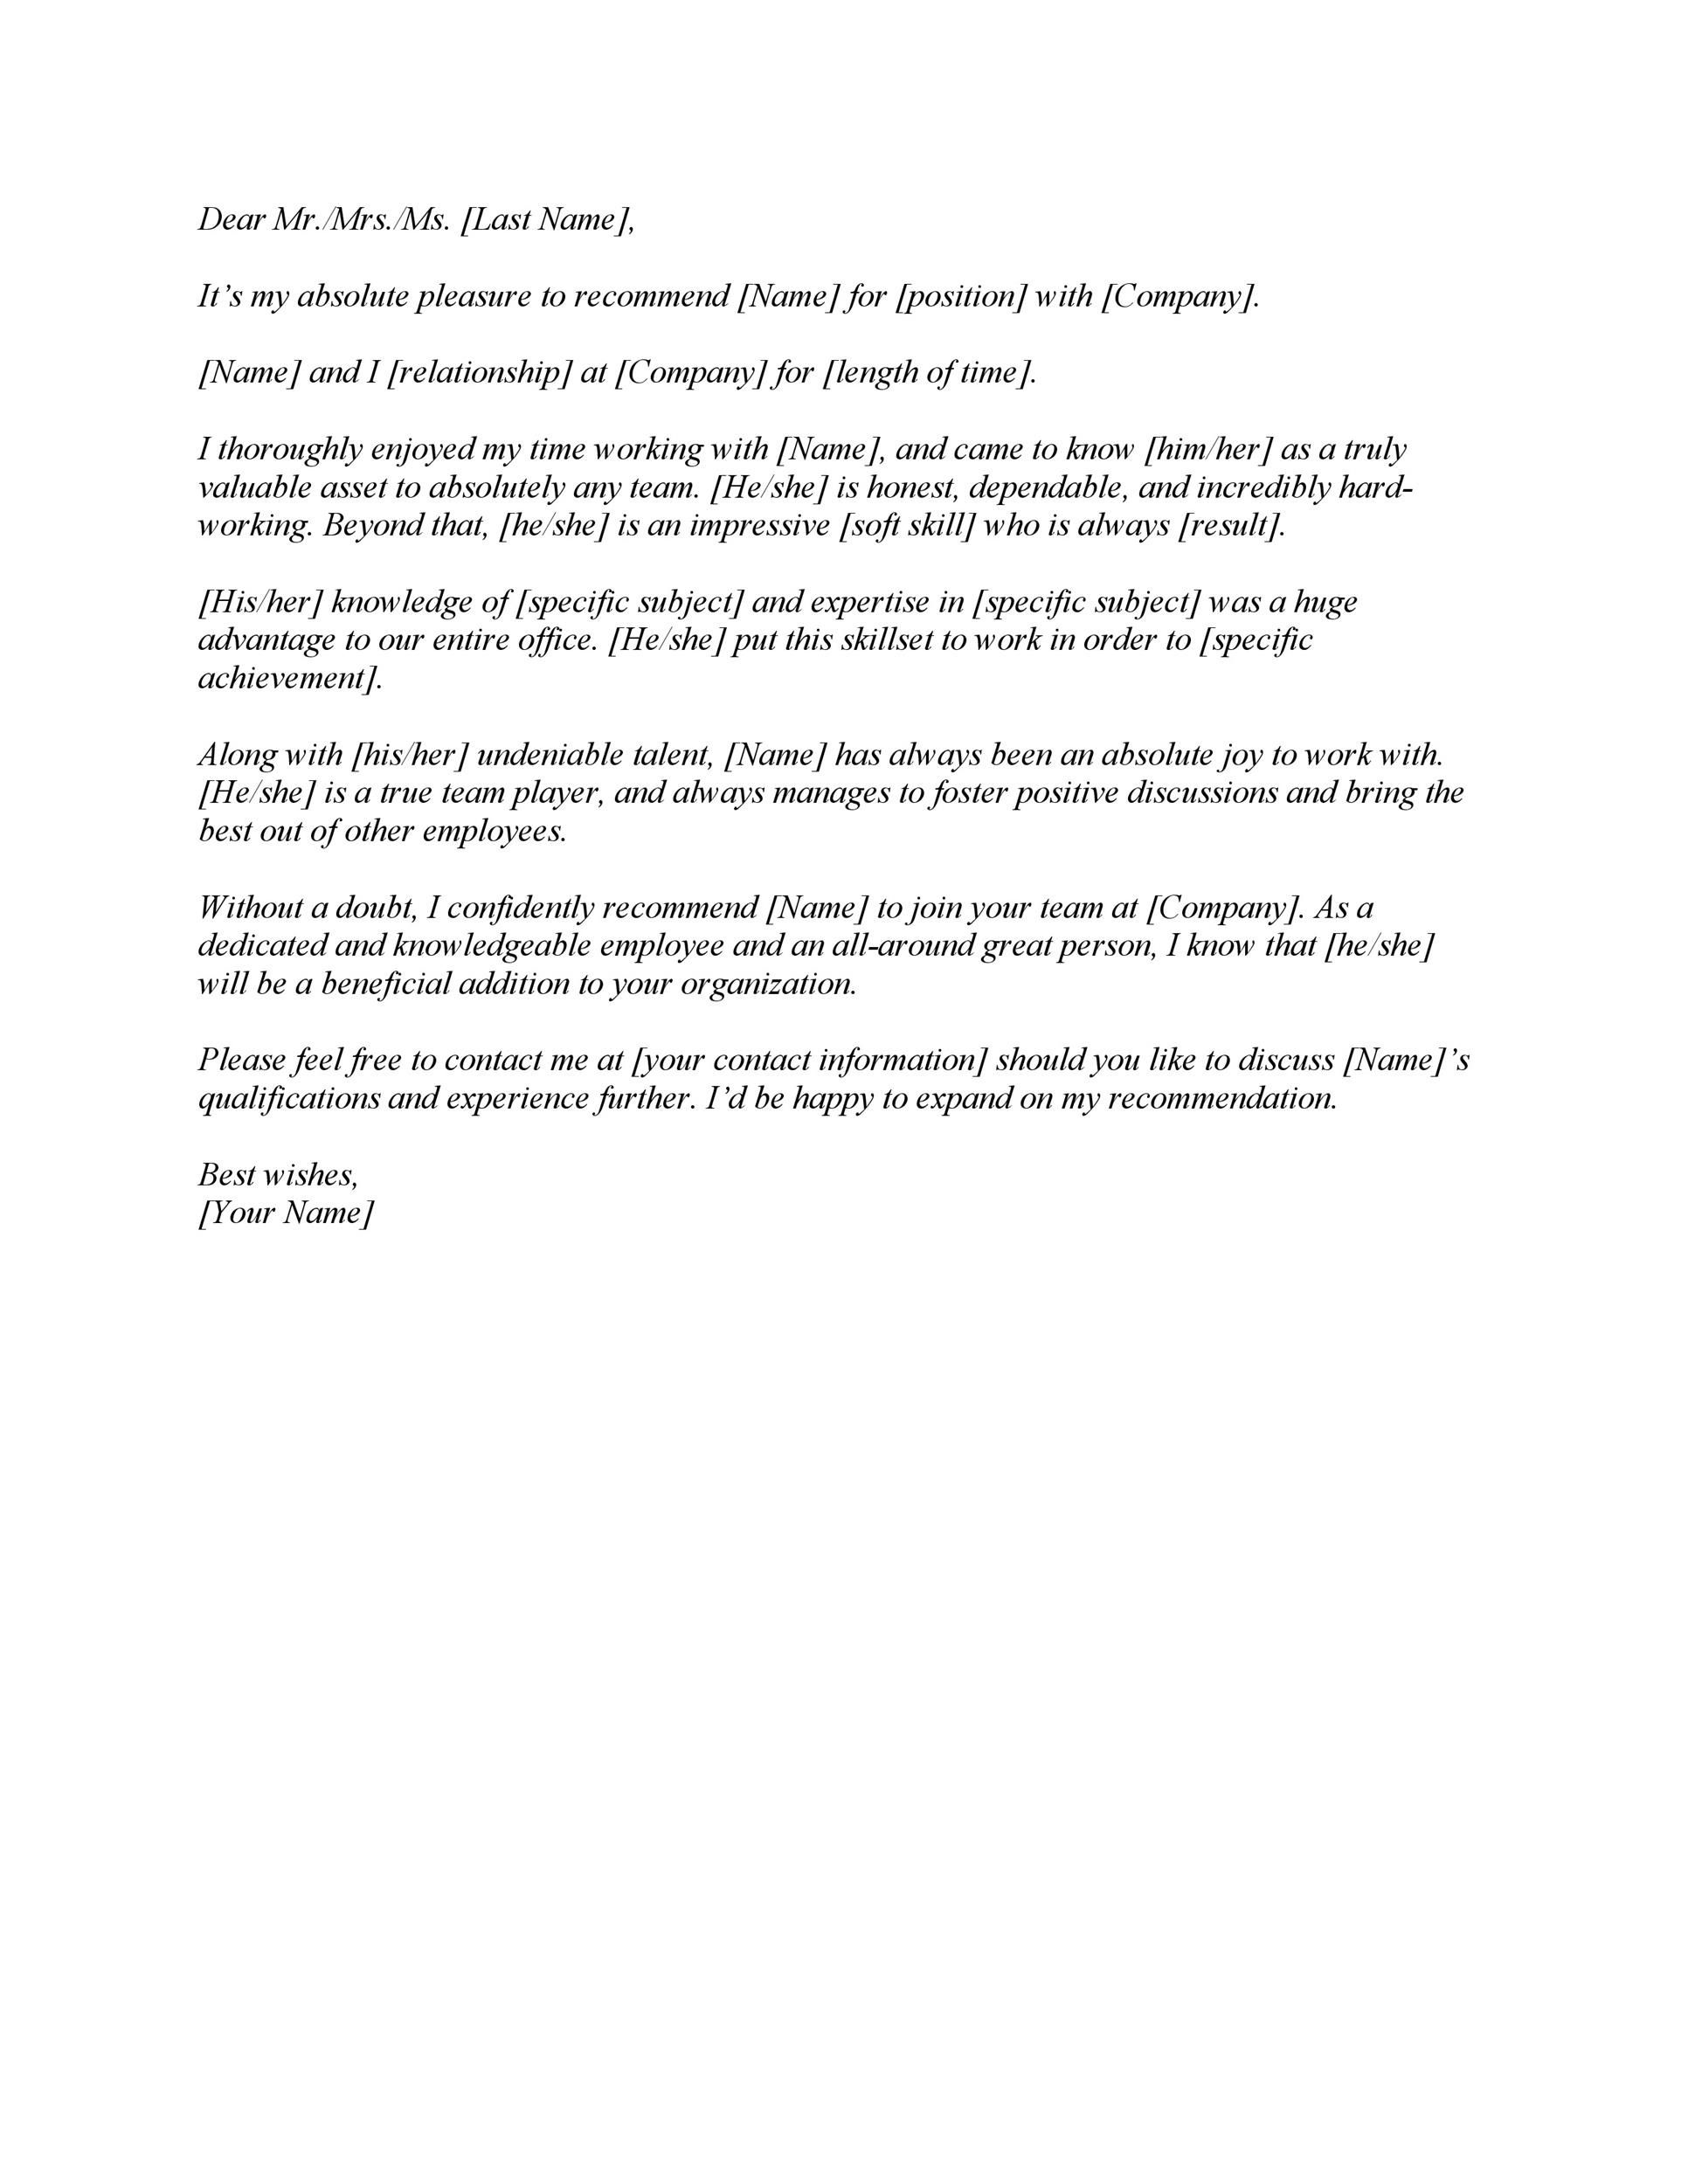 Letter Of Recommendation For Eagle Scout from www.addictionary.org